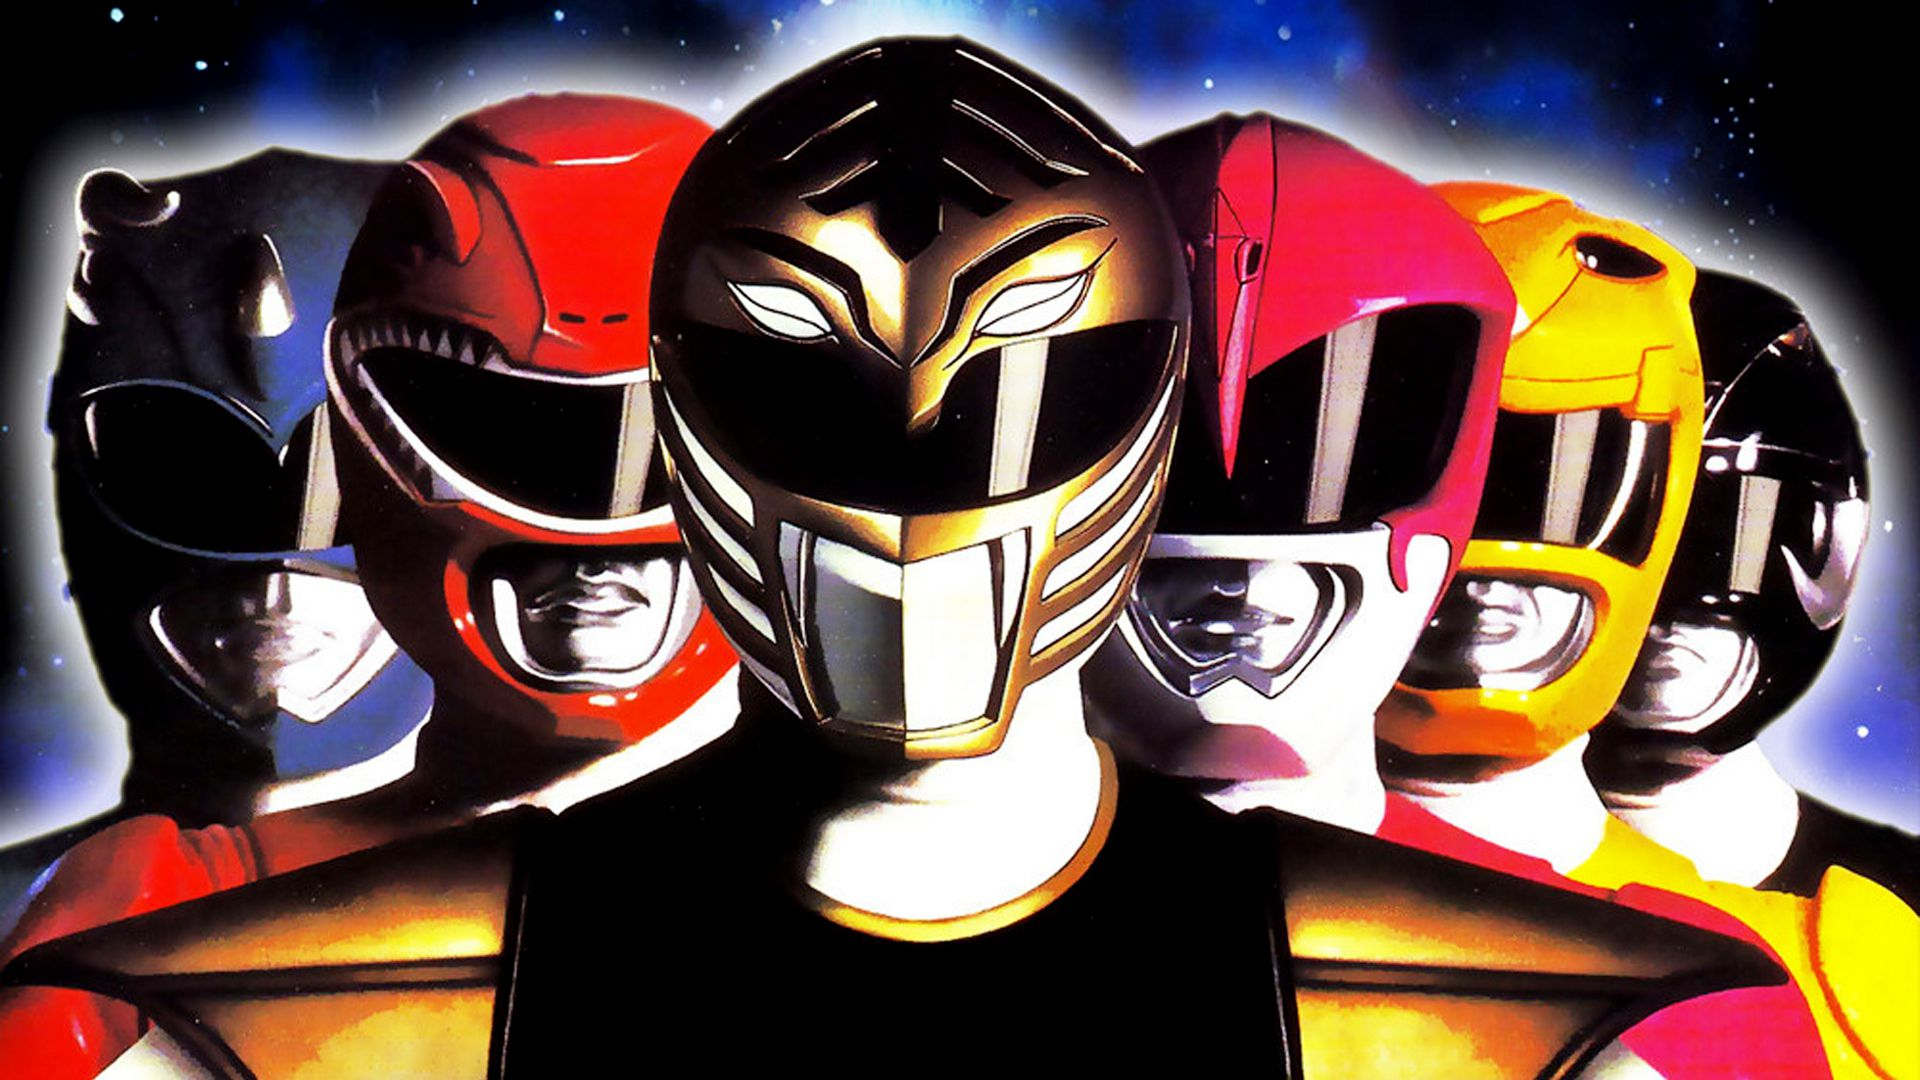 Power Ranger Wallpaper